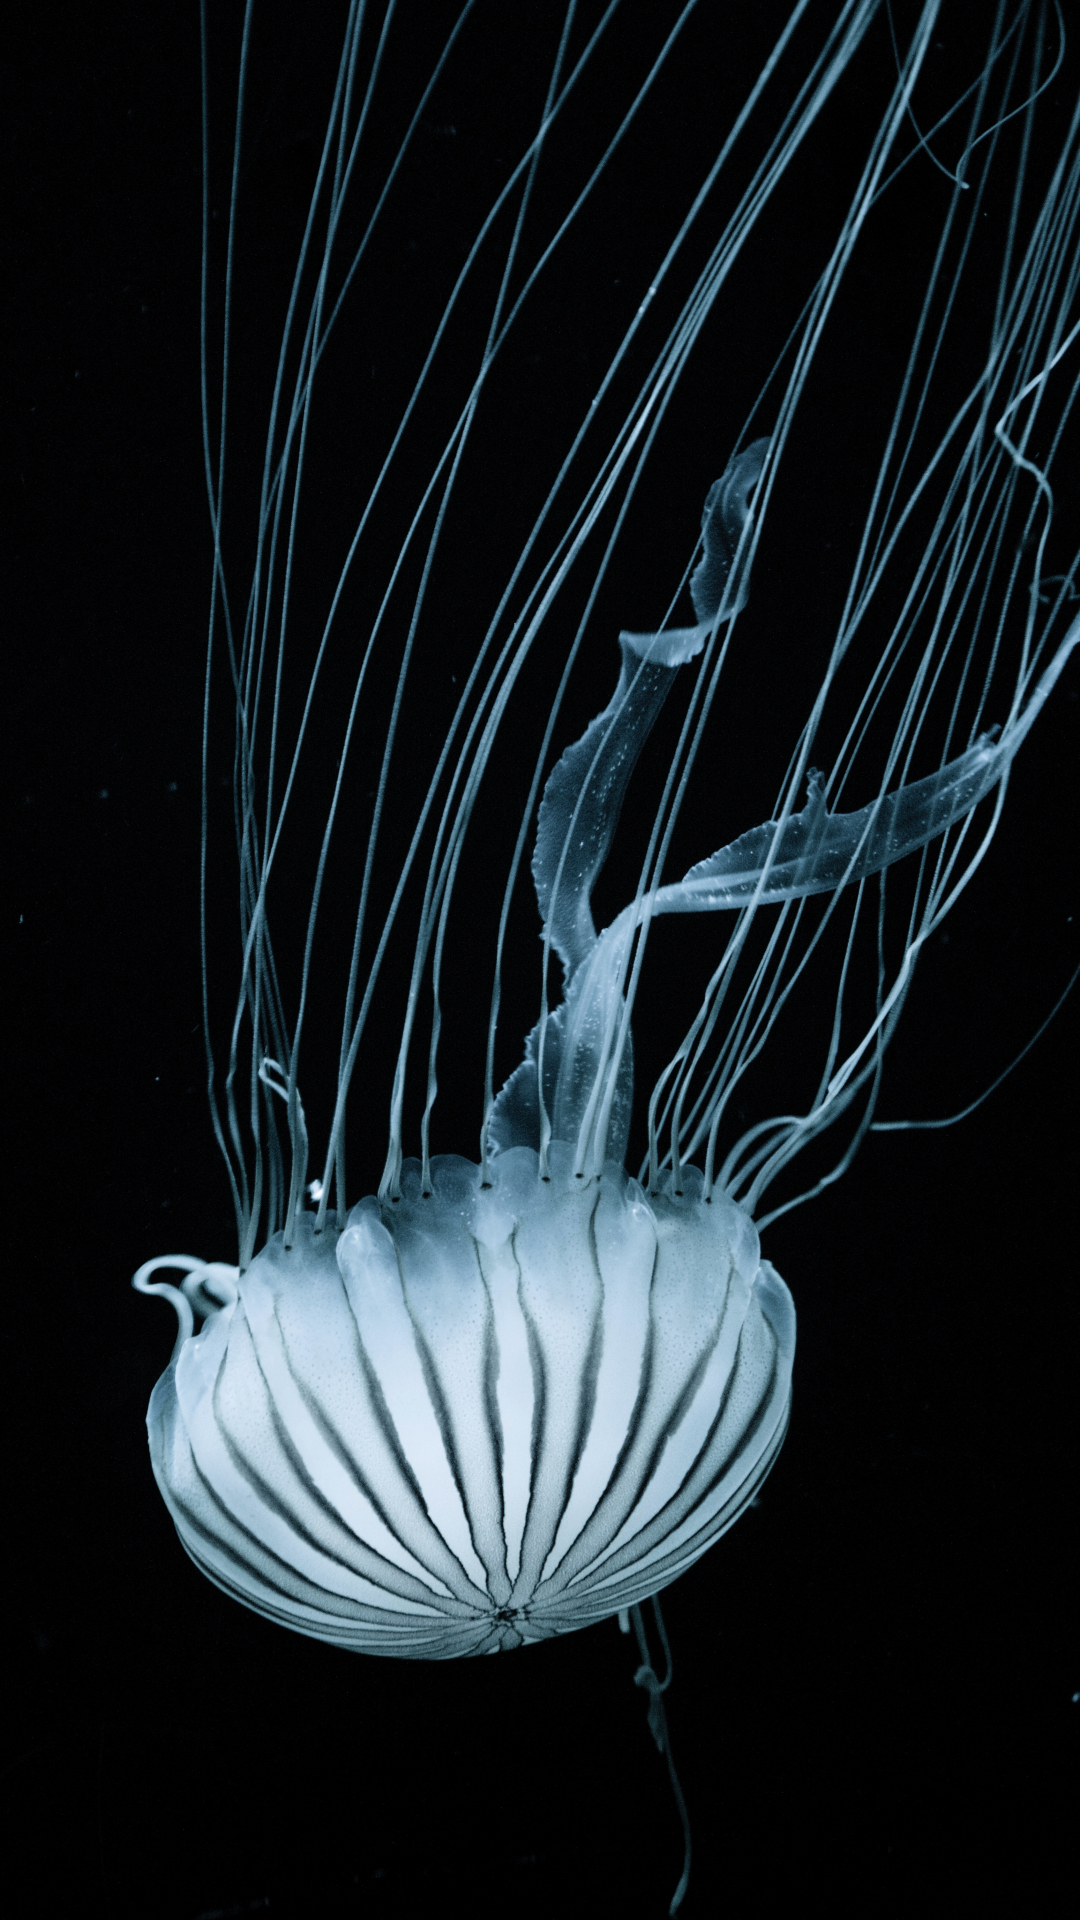 iPhone Wallpaper Jellyfish white 3Wallpapers : notre sélection de fonds d'écran du 01/02/2018